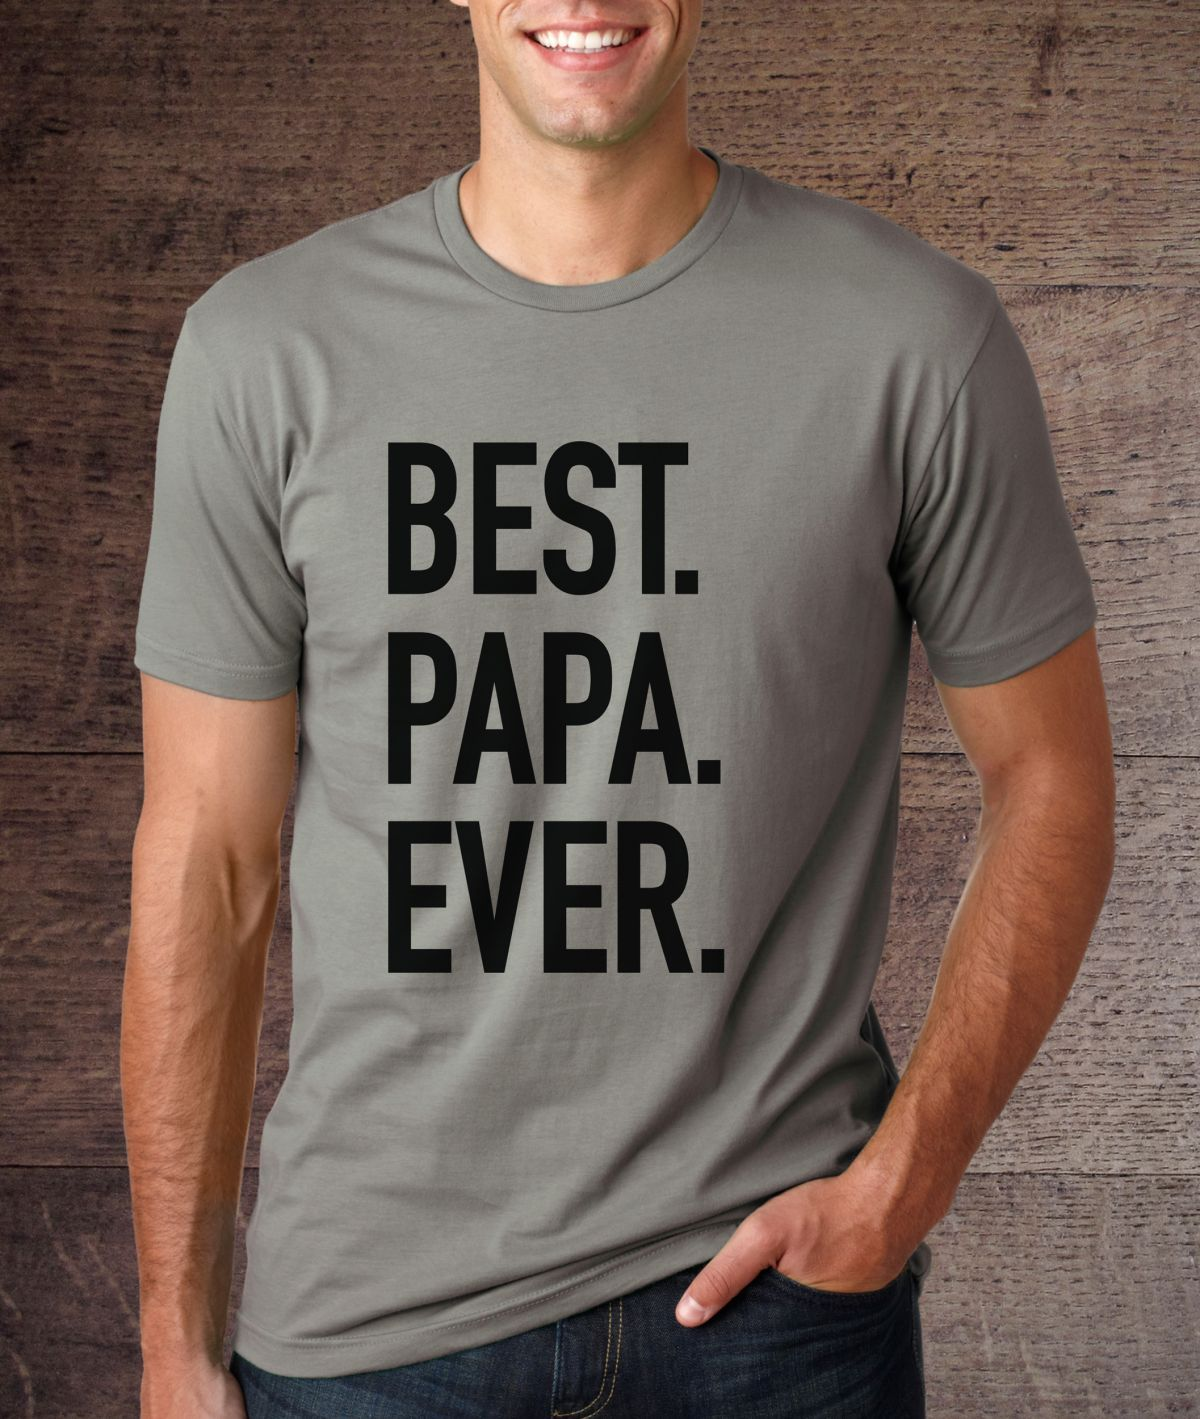 7a66fd21f0f BEST. PAPA. EVER. Get it just in time for Father s Day at 52% off ...